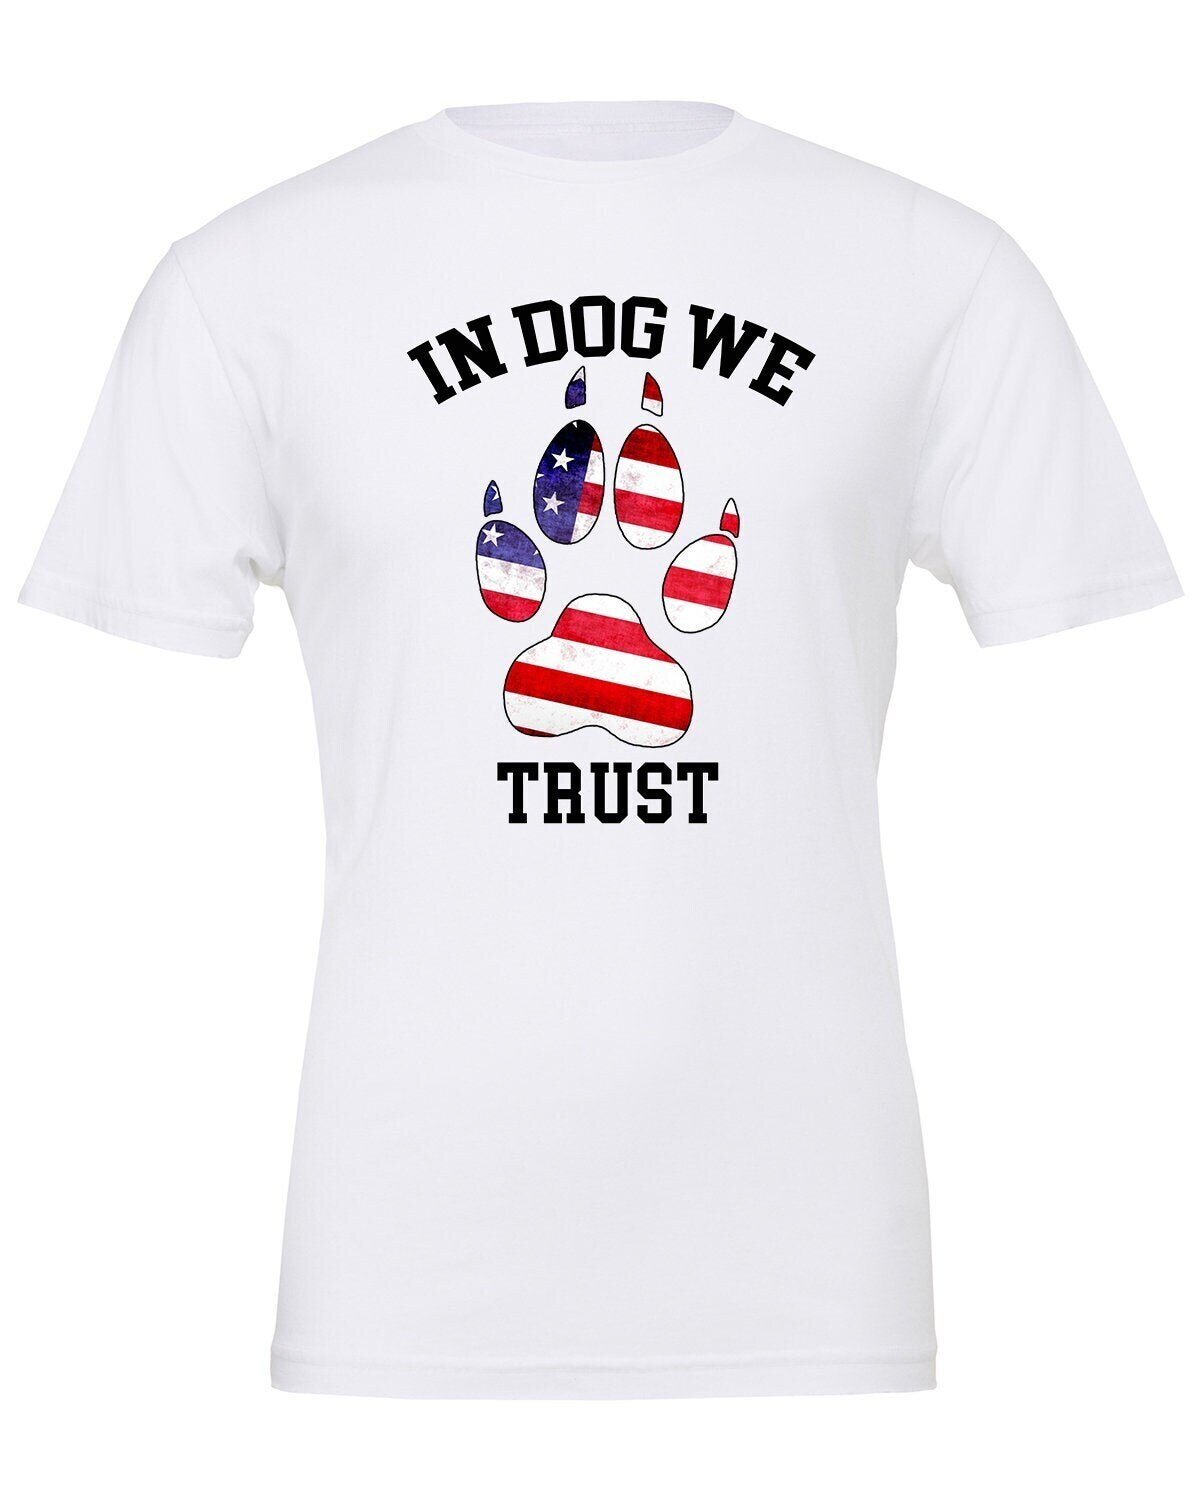 In Dog We Trust v1 Tee - American, USA, British, Canadian